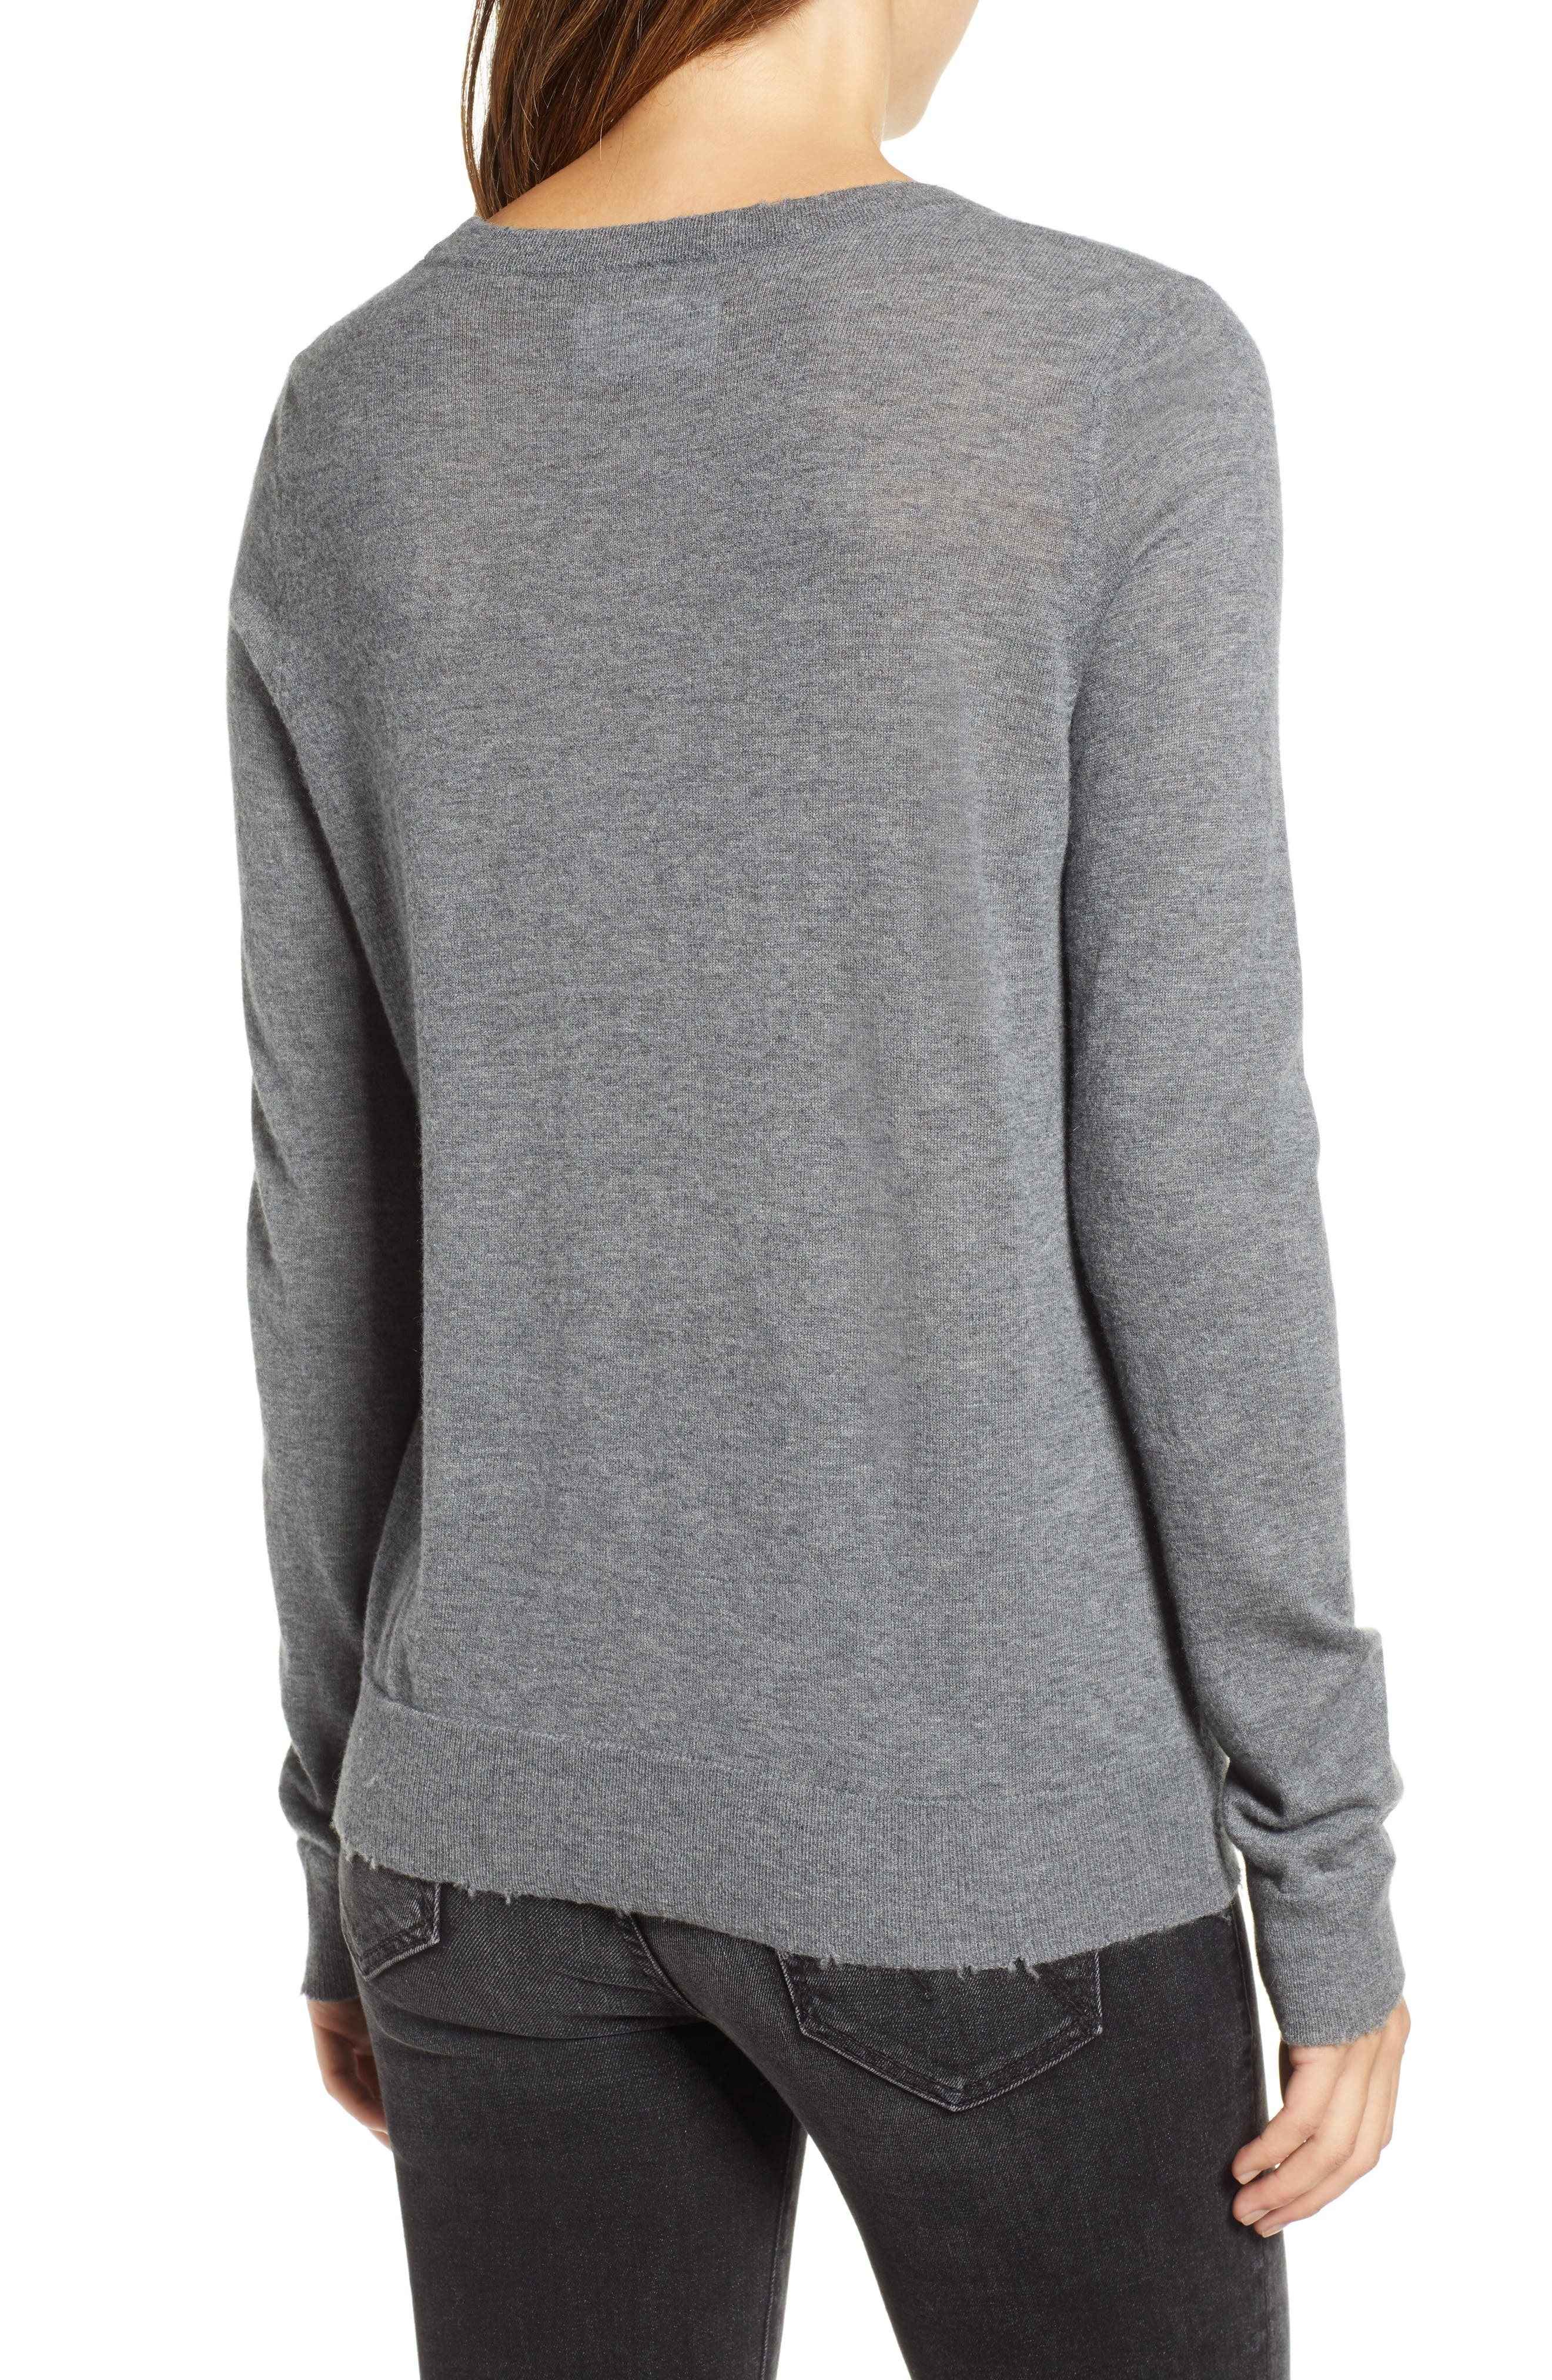 Miss Bis Skull Cashmere Tee,                             Alternate thumbnail 2, color,                             GRIS